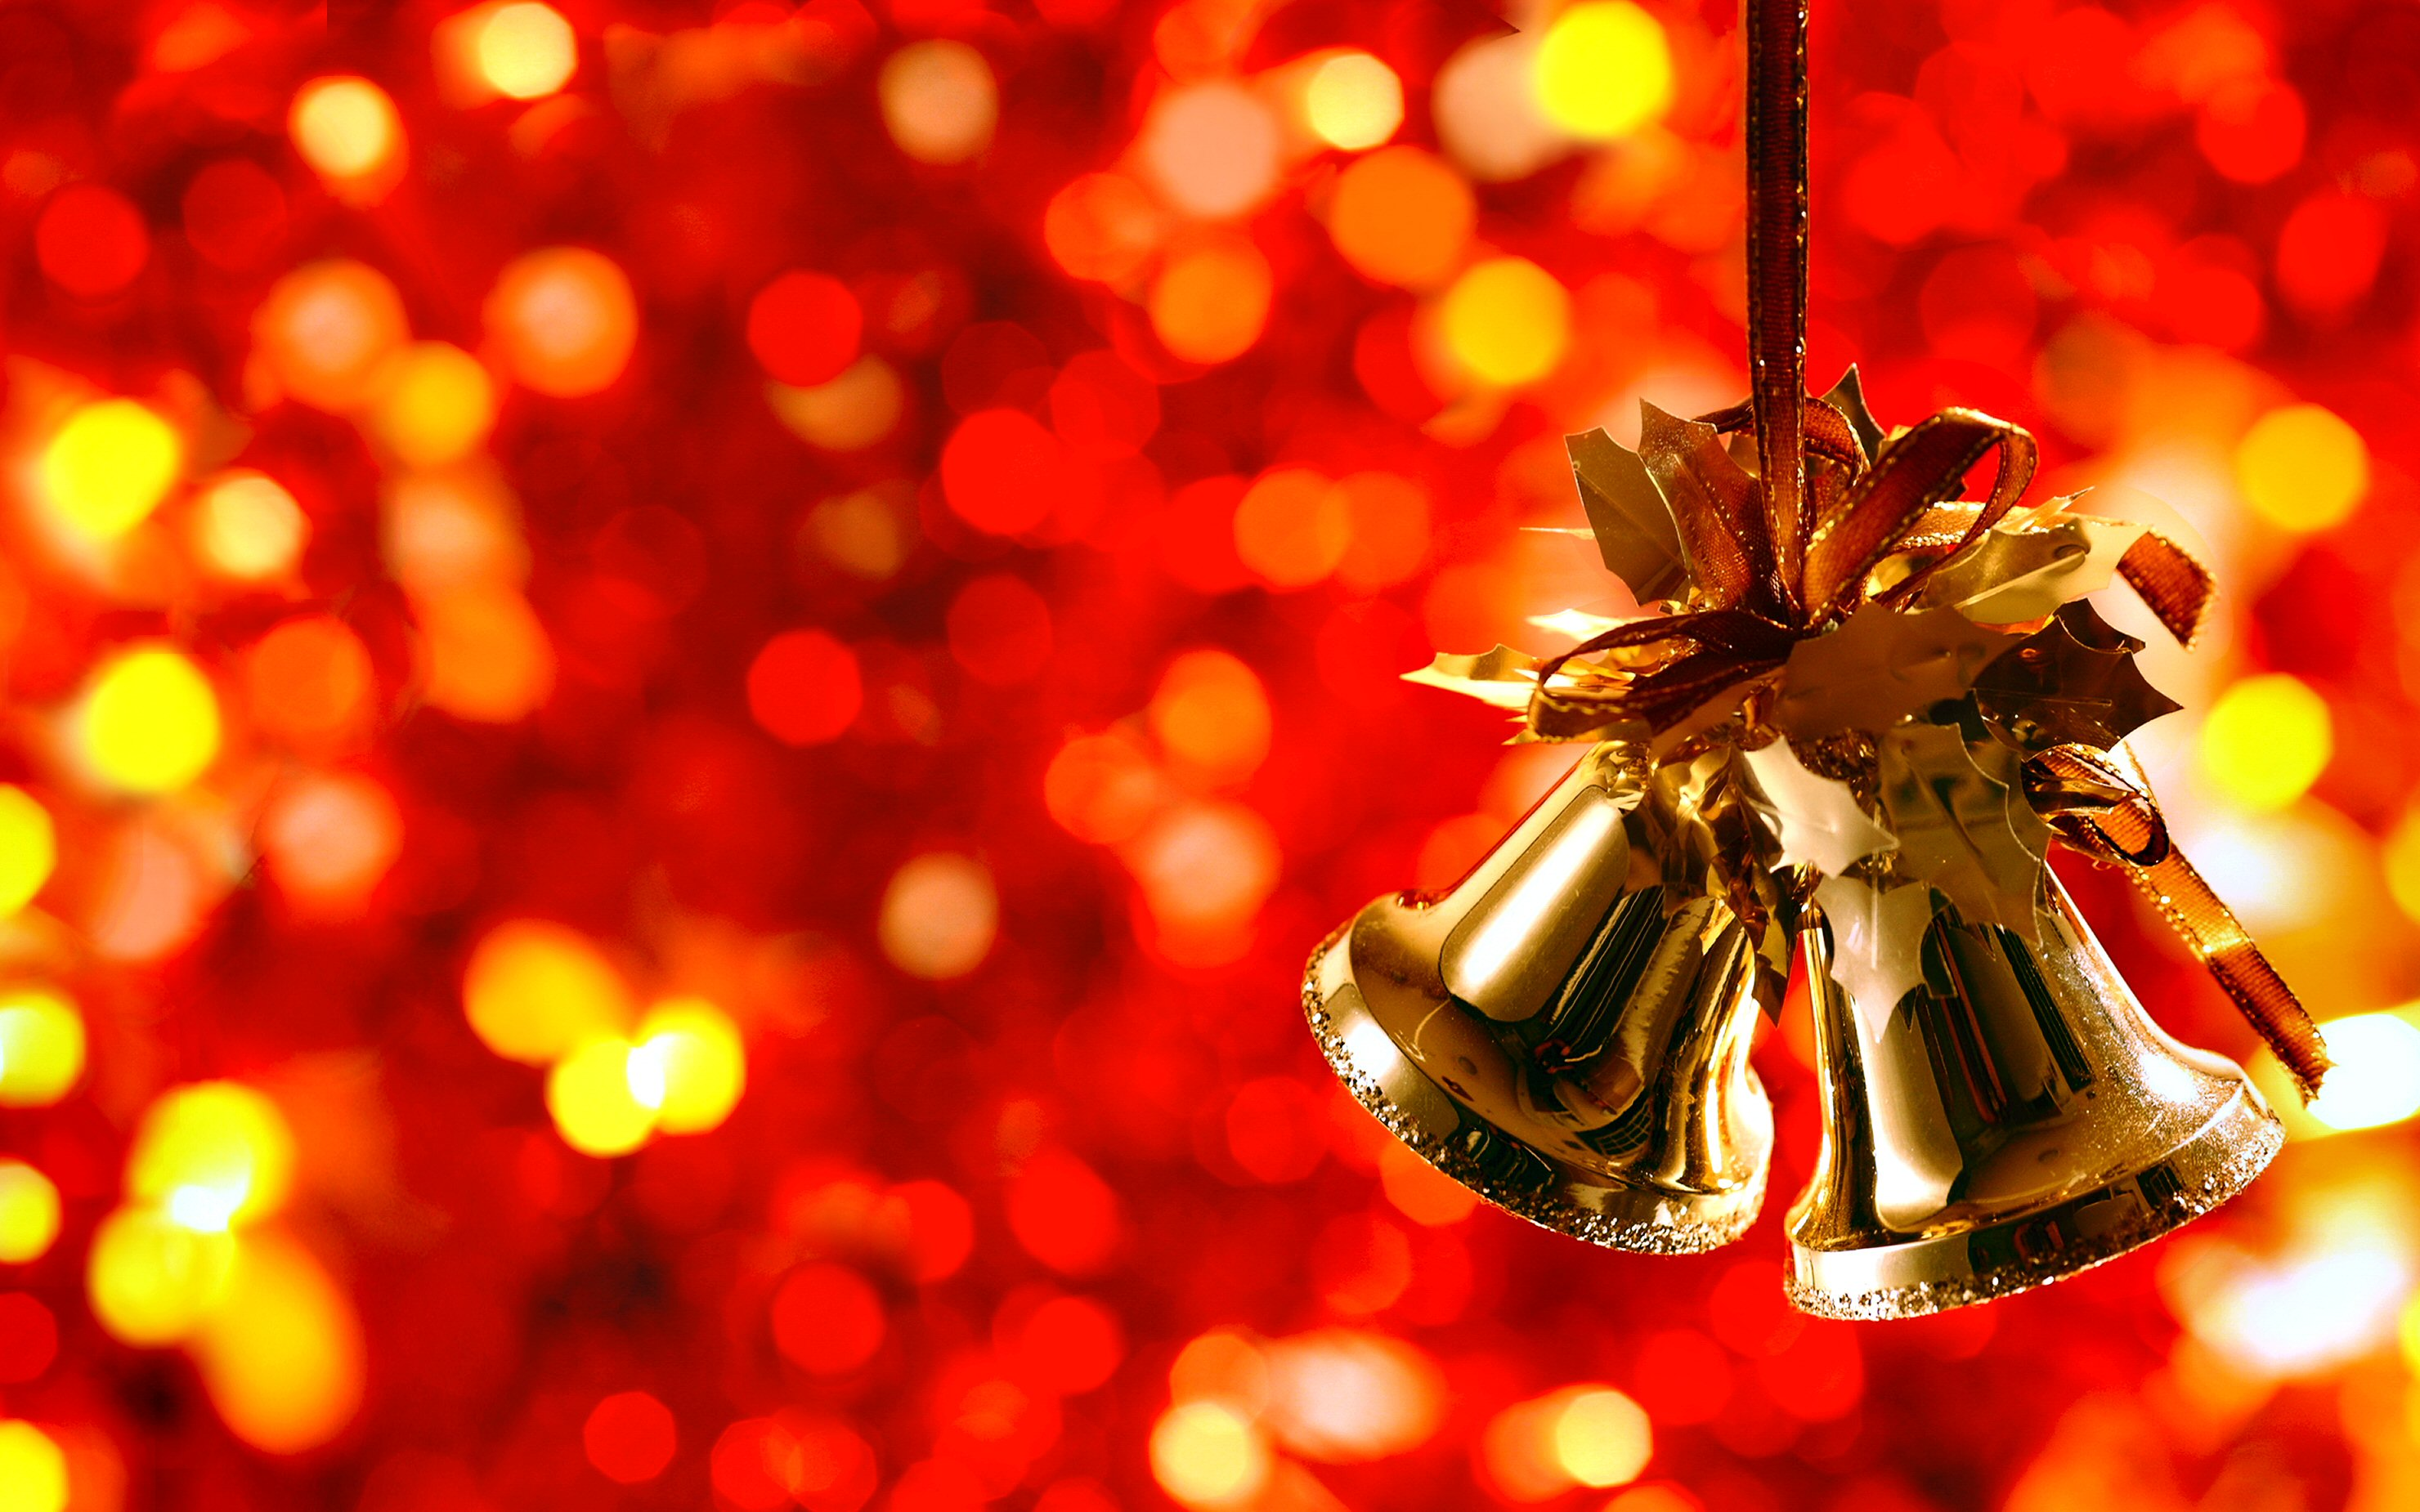 christmas bells full hd wallpaper and background image | 2960x1850